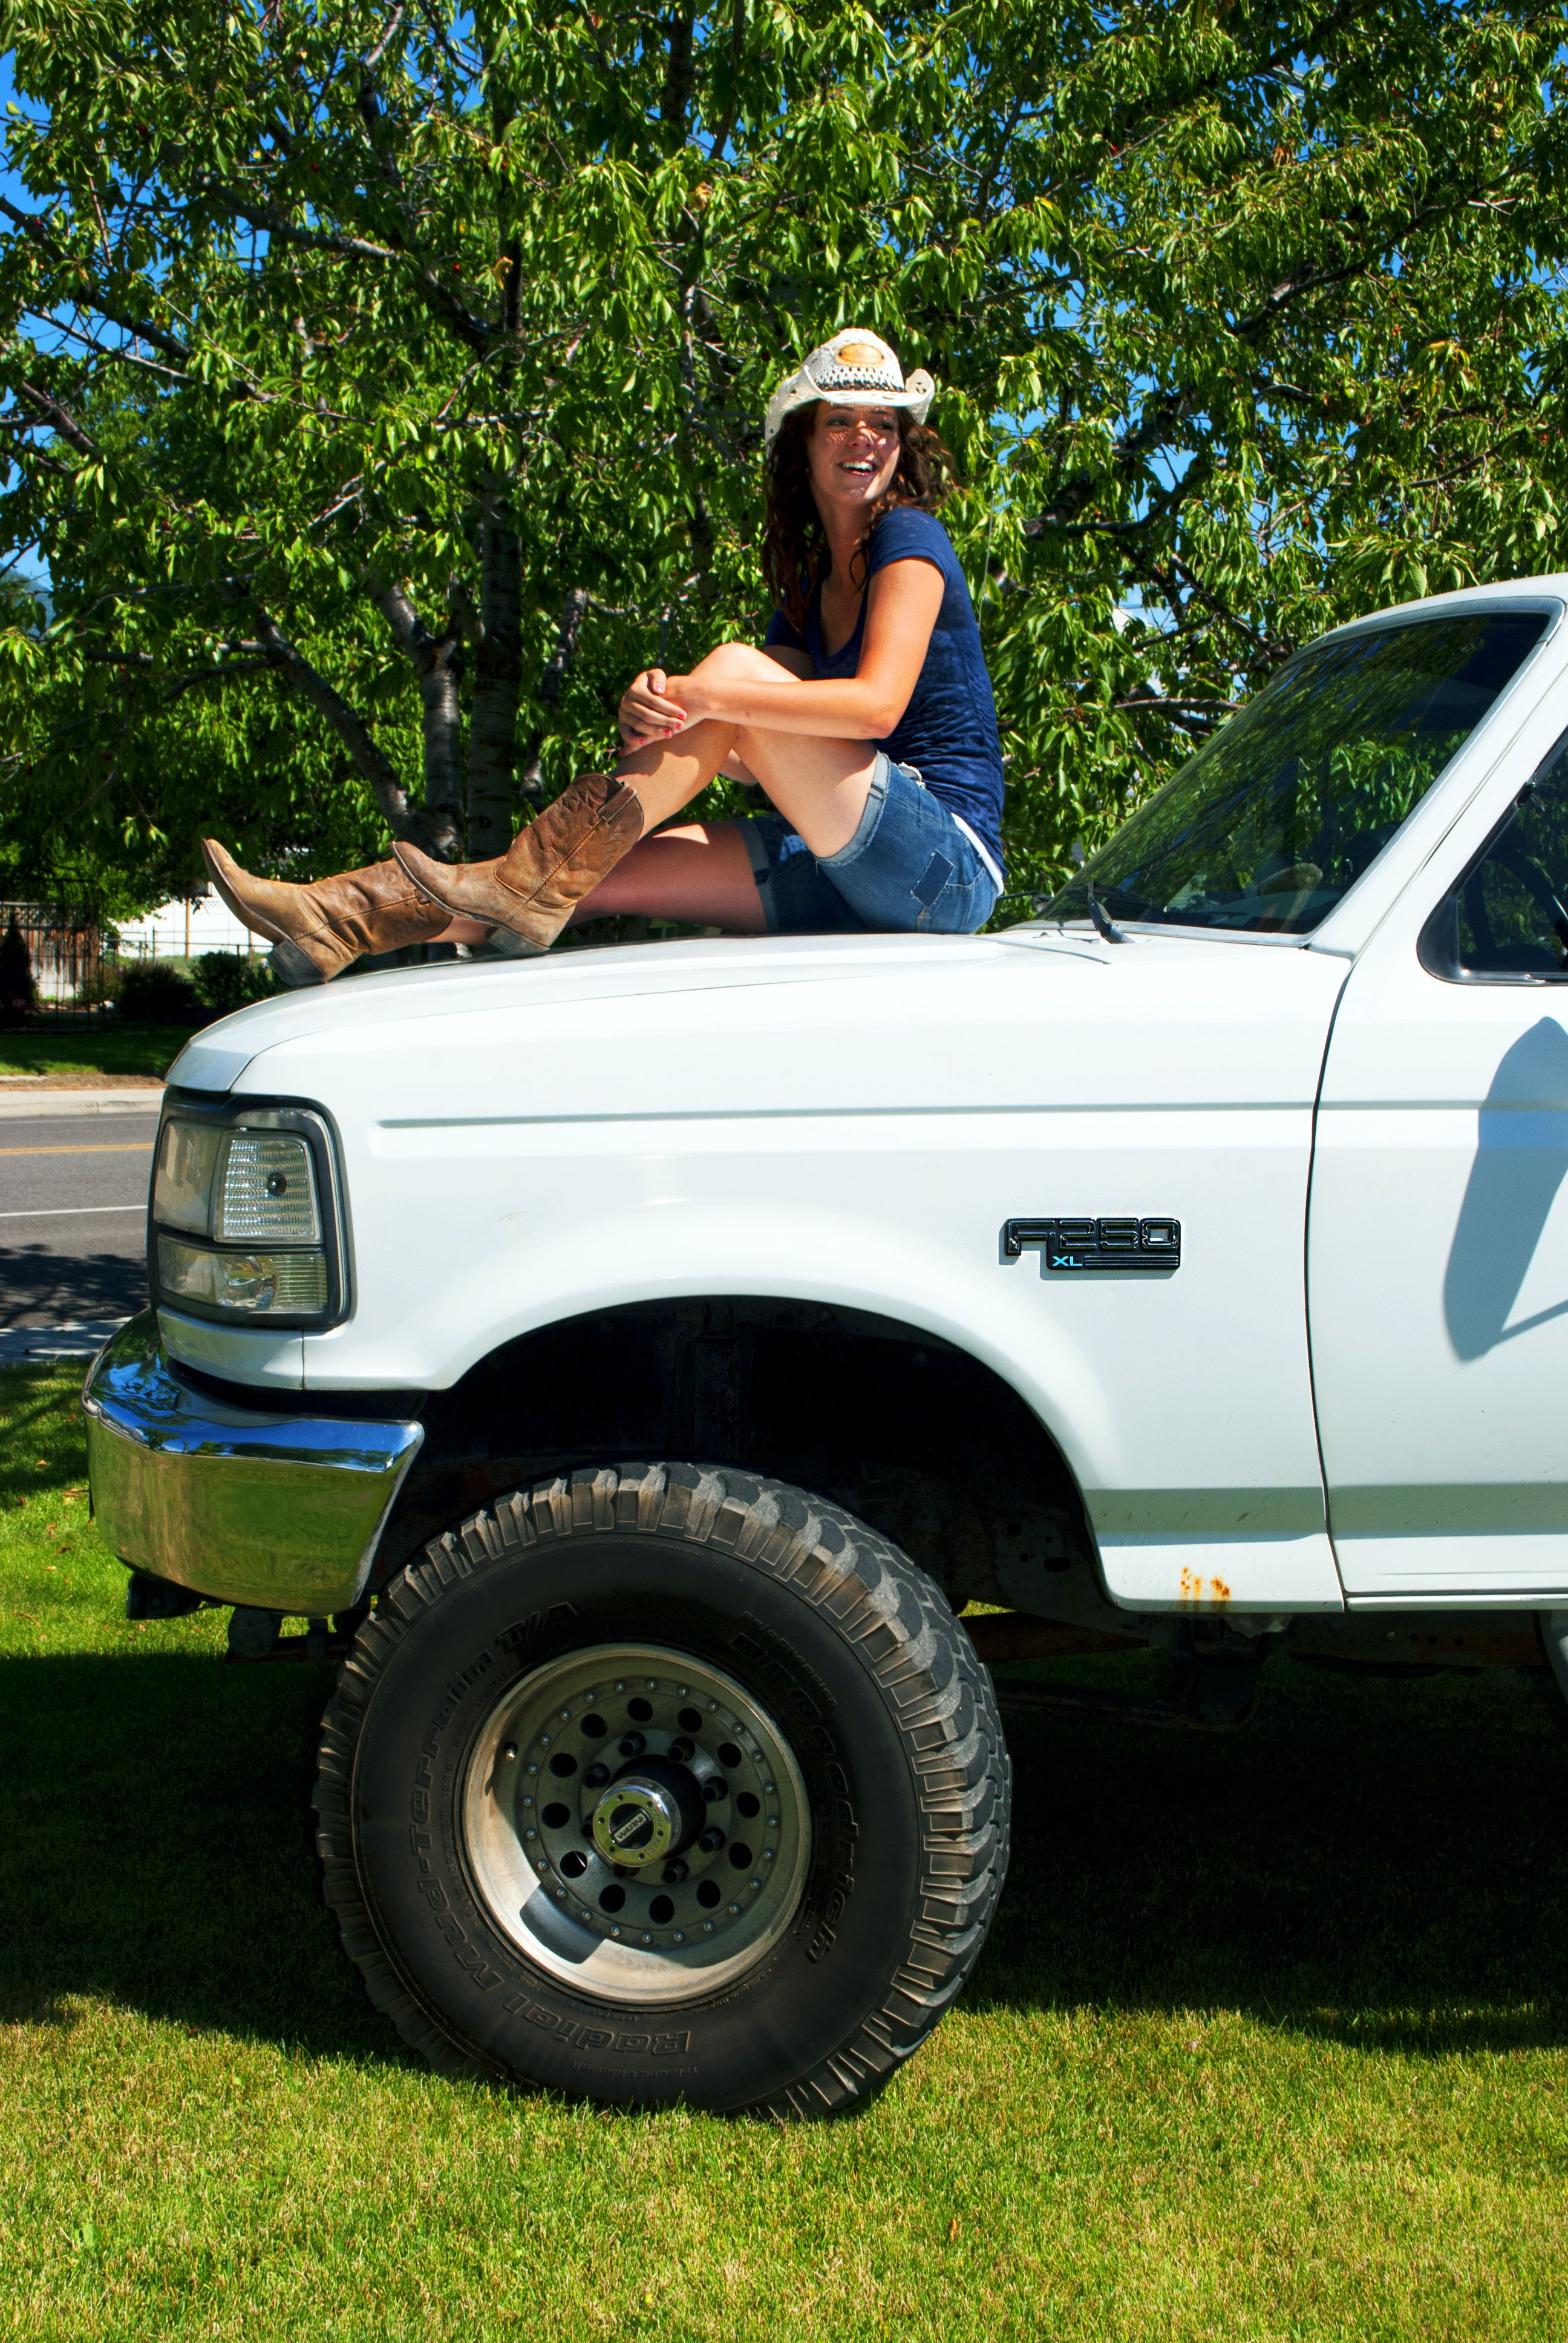 Boots cowgirl on a truck photography